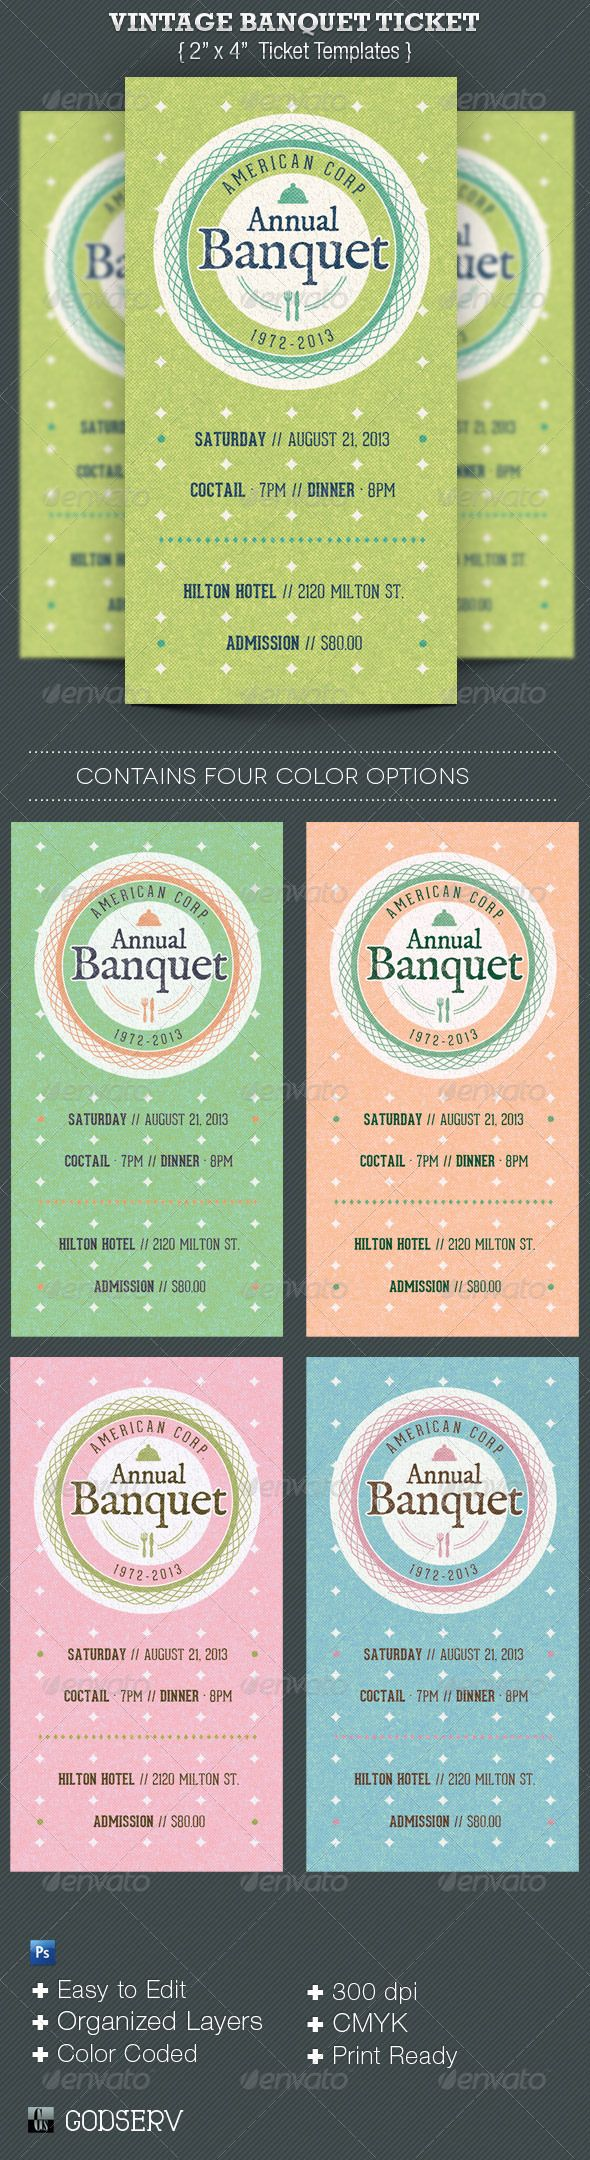 Best 25 Ticket template ideas – Entry Ticket Template